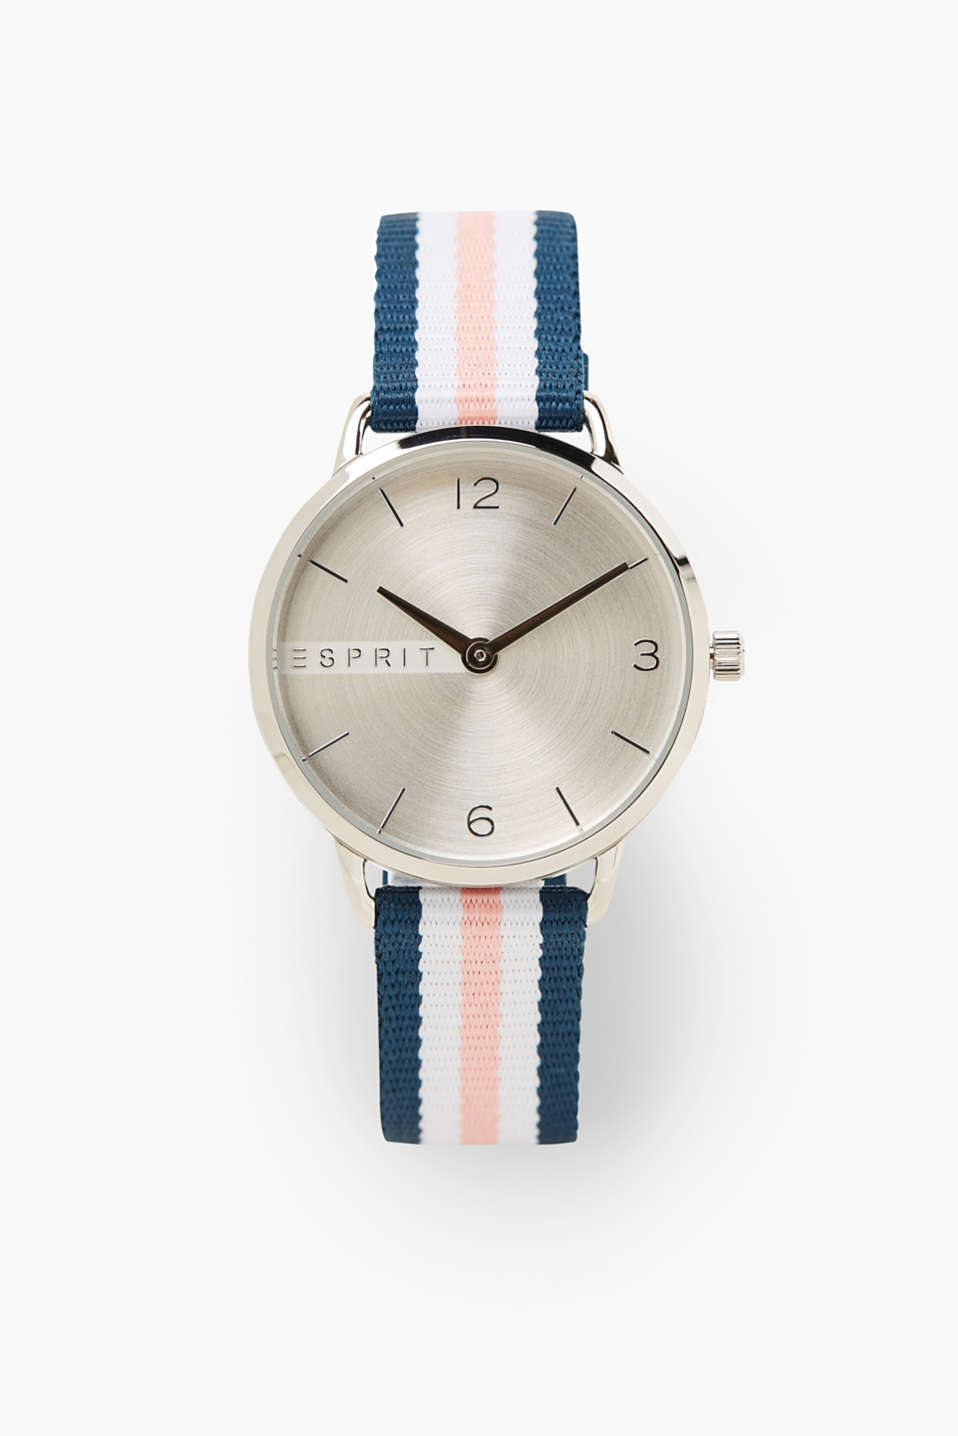 Modern and nautical! This watch stands out thanks to its striped textile strap